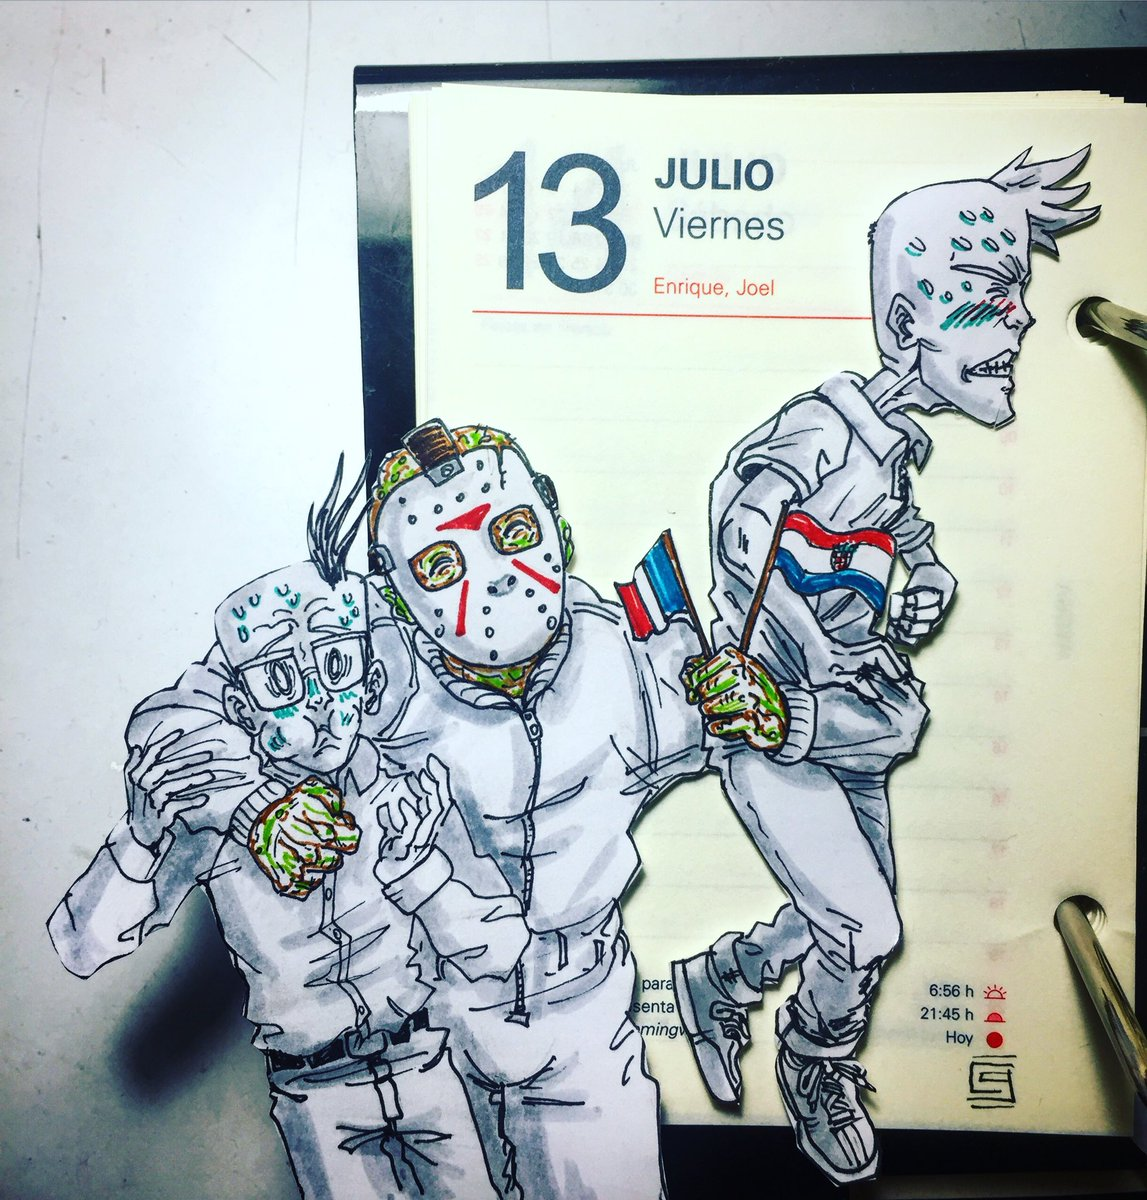 Friday the 13... who knew Jason was a soccer fan!?  #calendarcomic #officeart #soccer #futbol #football #worldcup  #worldcup2018 #russia2018 #drawing #dessin #dibujo #drawing #dailydoodle #doodleoftheday #jasonvorhees #fridaythe13th #viernes #vendredi #friday<br>http://pic.twitter.com/qrV7CHnTZz